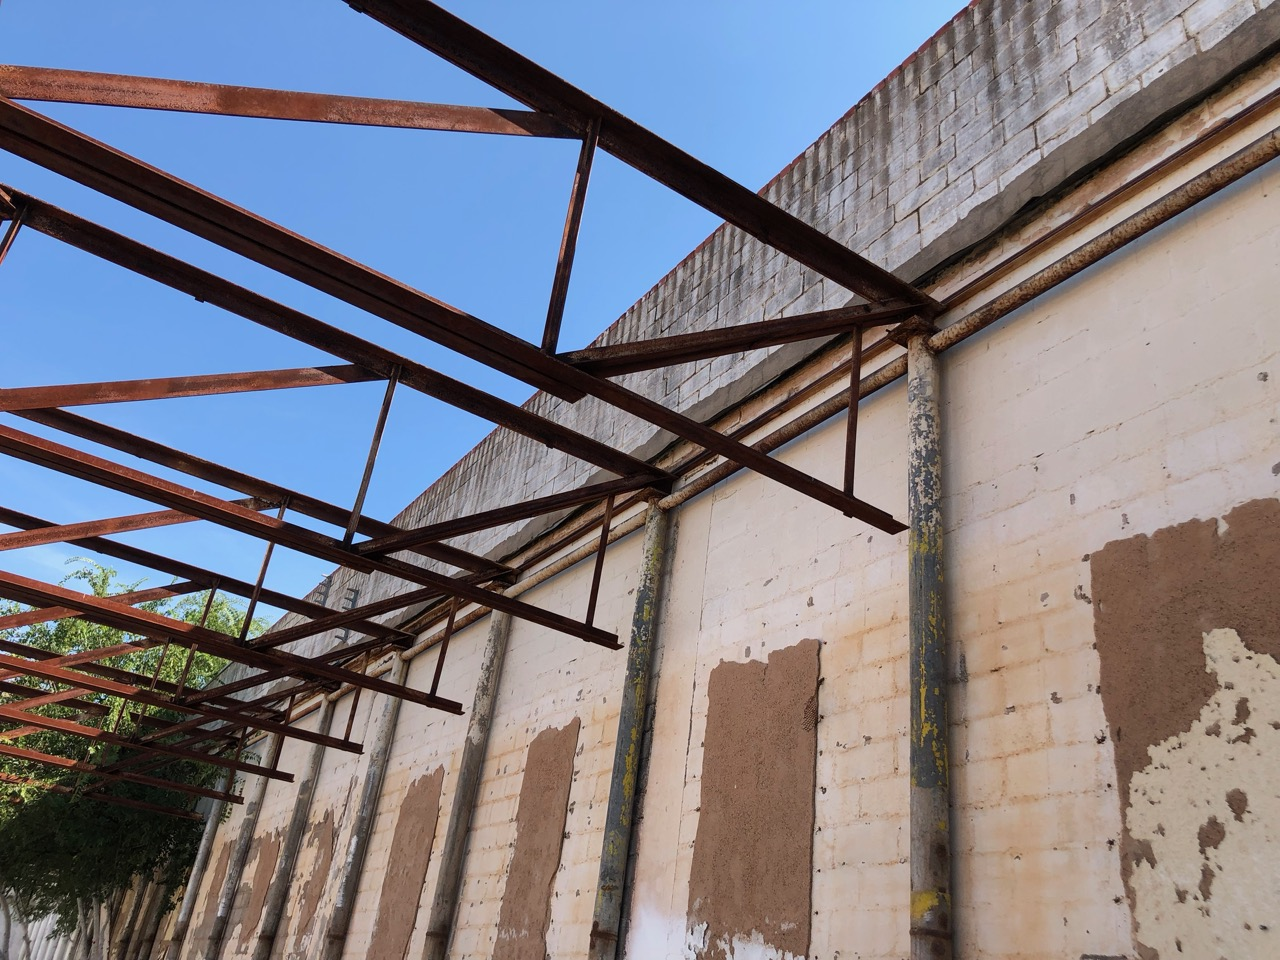 The walls of the adjacent building may have been shared with the old bowling alley, although piers separate from the building hold up the steel trusses. (LIVE! Photo/Joe Hyde)